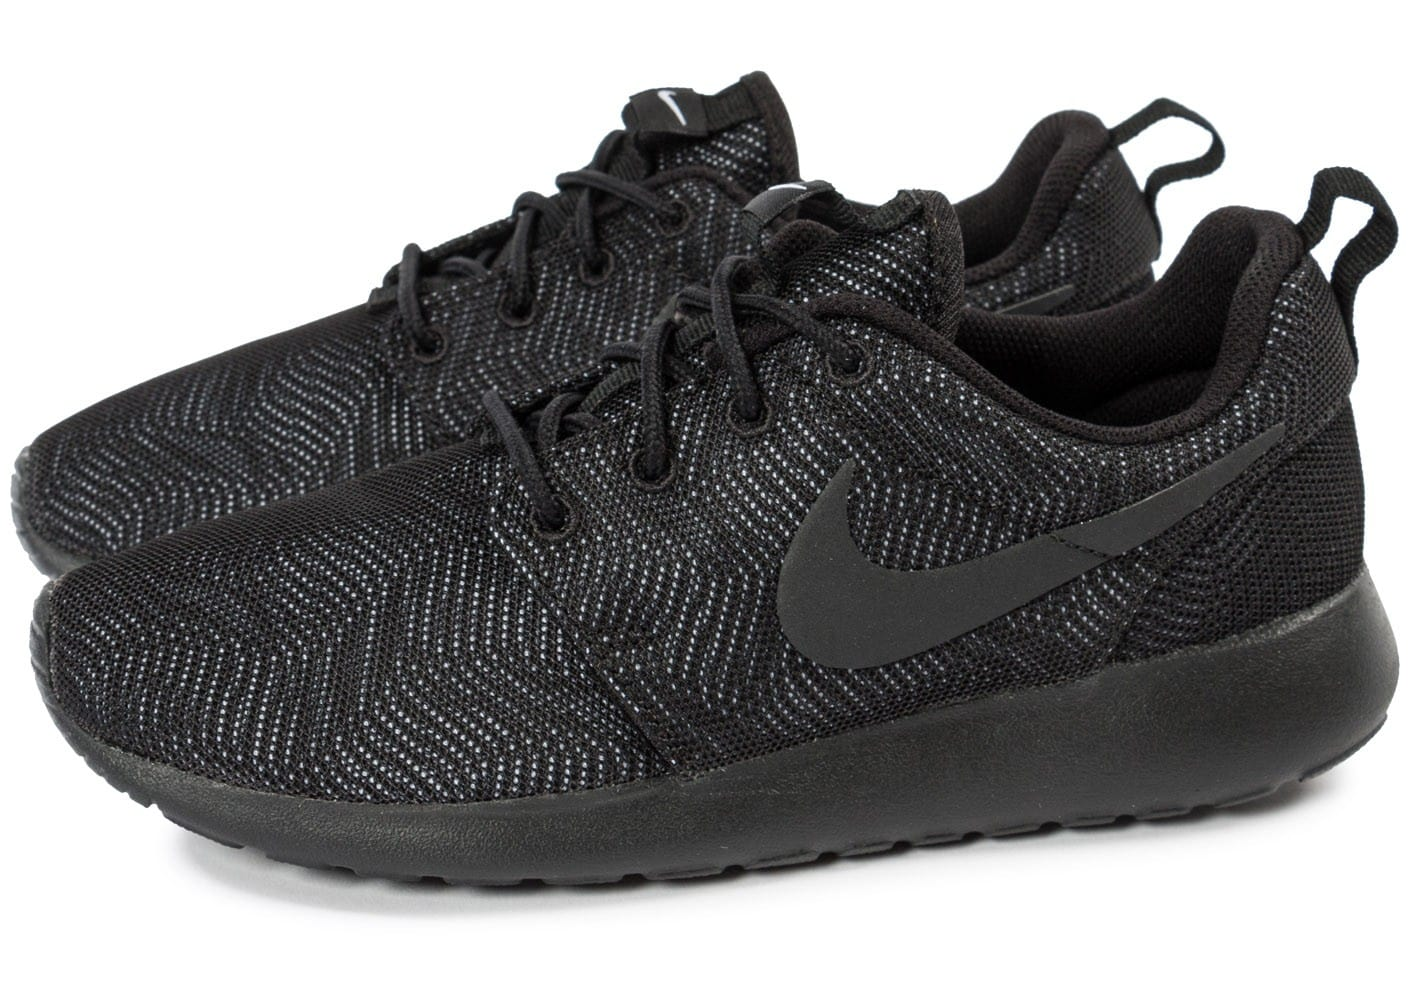 huge selection of 09119 ceaa6 Nike One Noire Femme Roshe Chausport Chaussures Baskets Moire lTcK13FJ